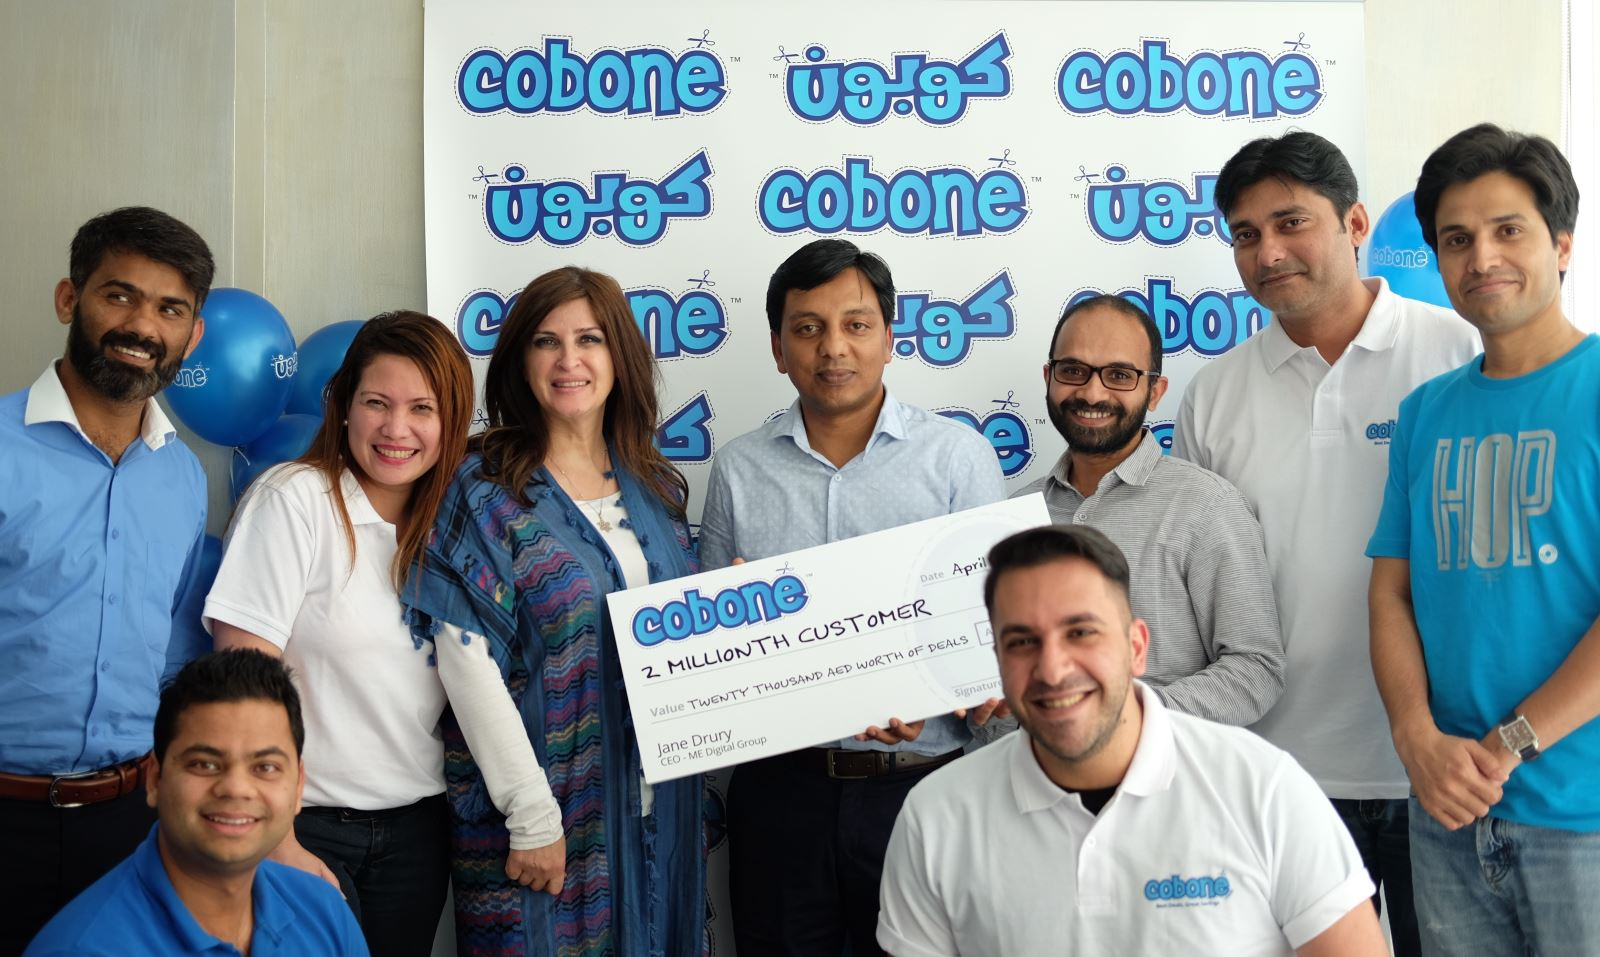 Cobone 2 millionth customer with the team